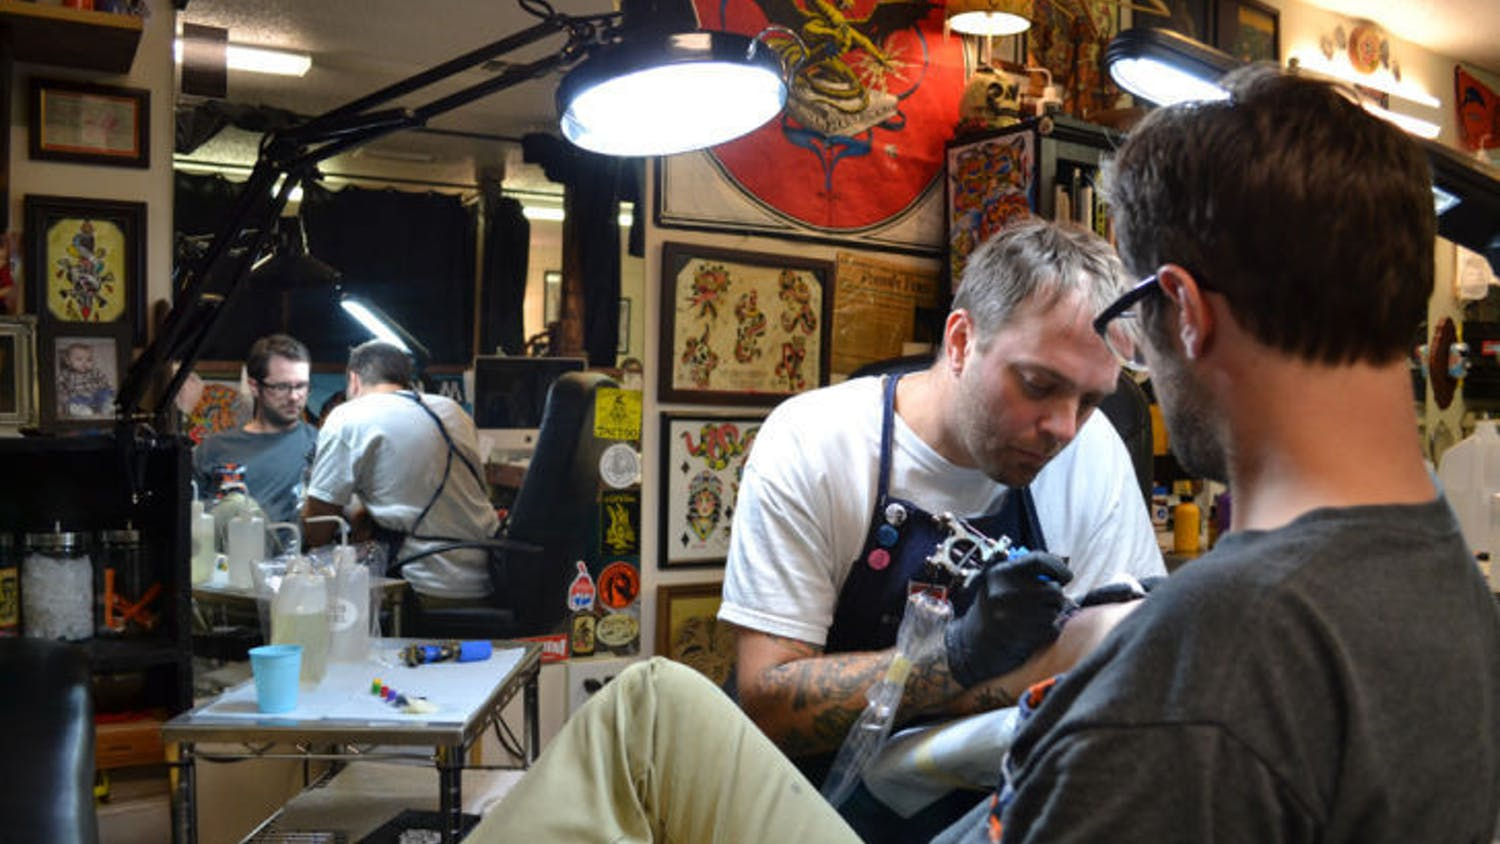 Mike Salay, 39, owner of Anthem Tattoo Parlor, tattoos Rich Mal, 29, the shop's tattoo apprentice. The parlor is relocating April 15 to 230 NW Second Ave.